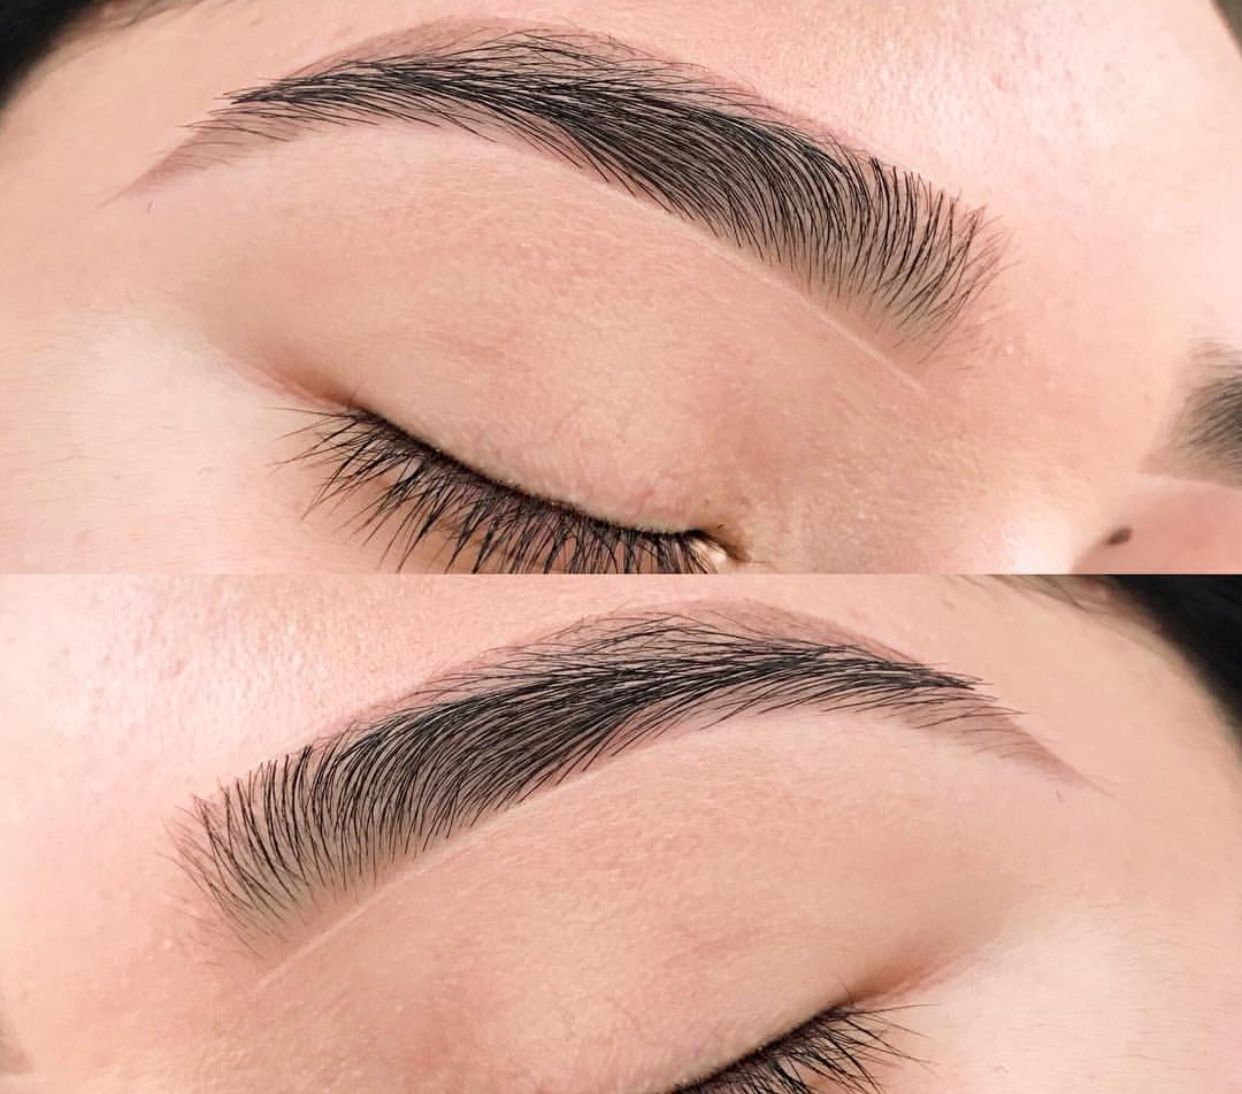 Natural Brows Full Eye Brows Arched Eyebrows Brows Eyebrows